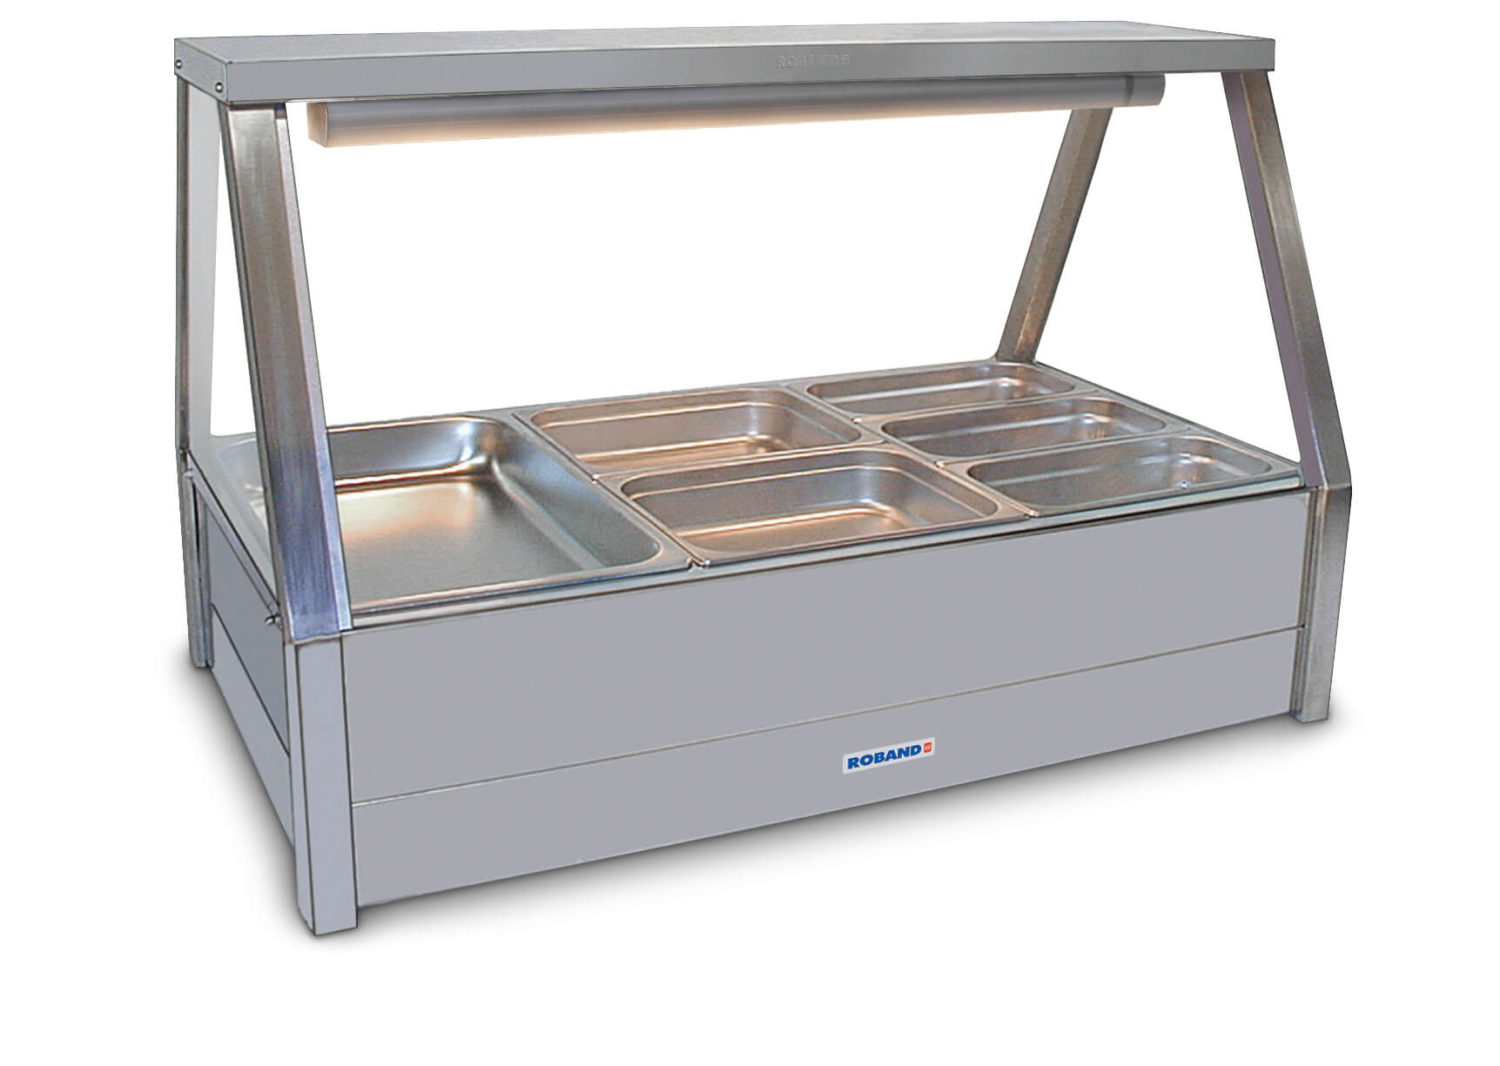 Roband Straight Glass Hot Food Display Bar, 6 pans double row with roller doors